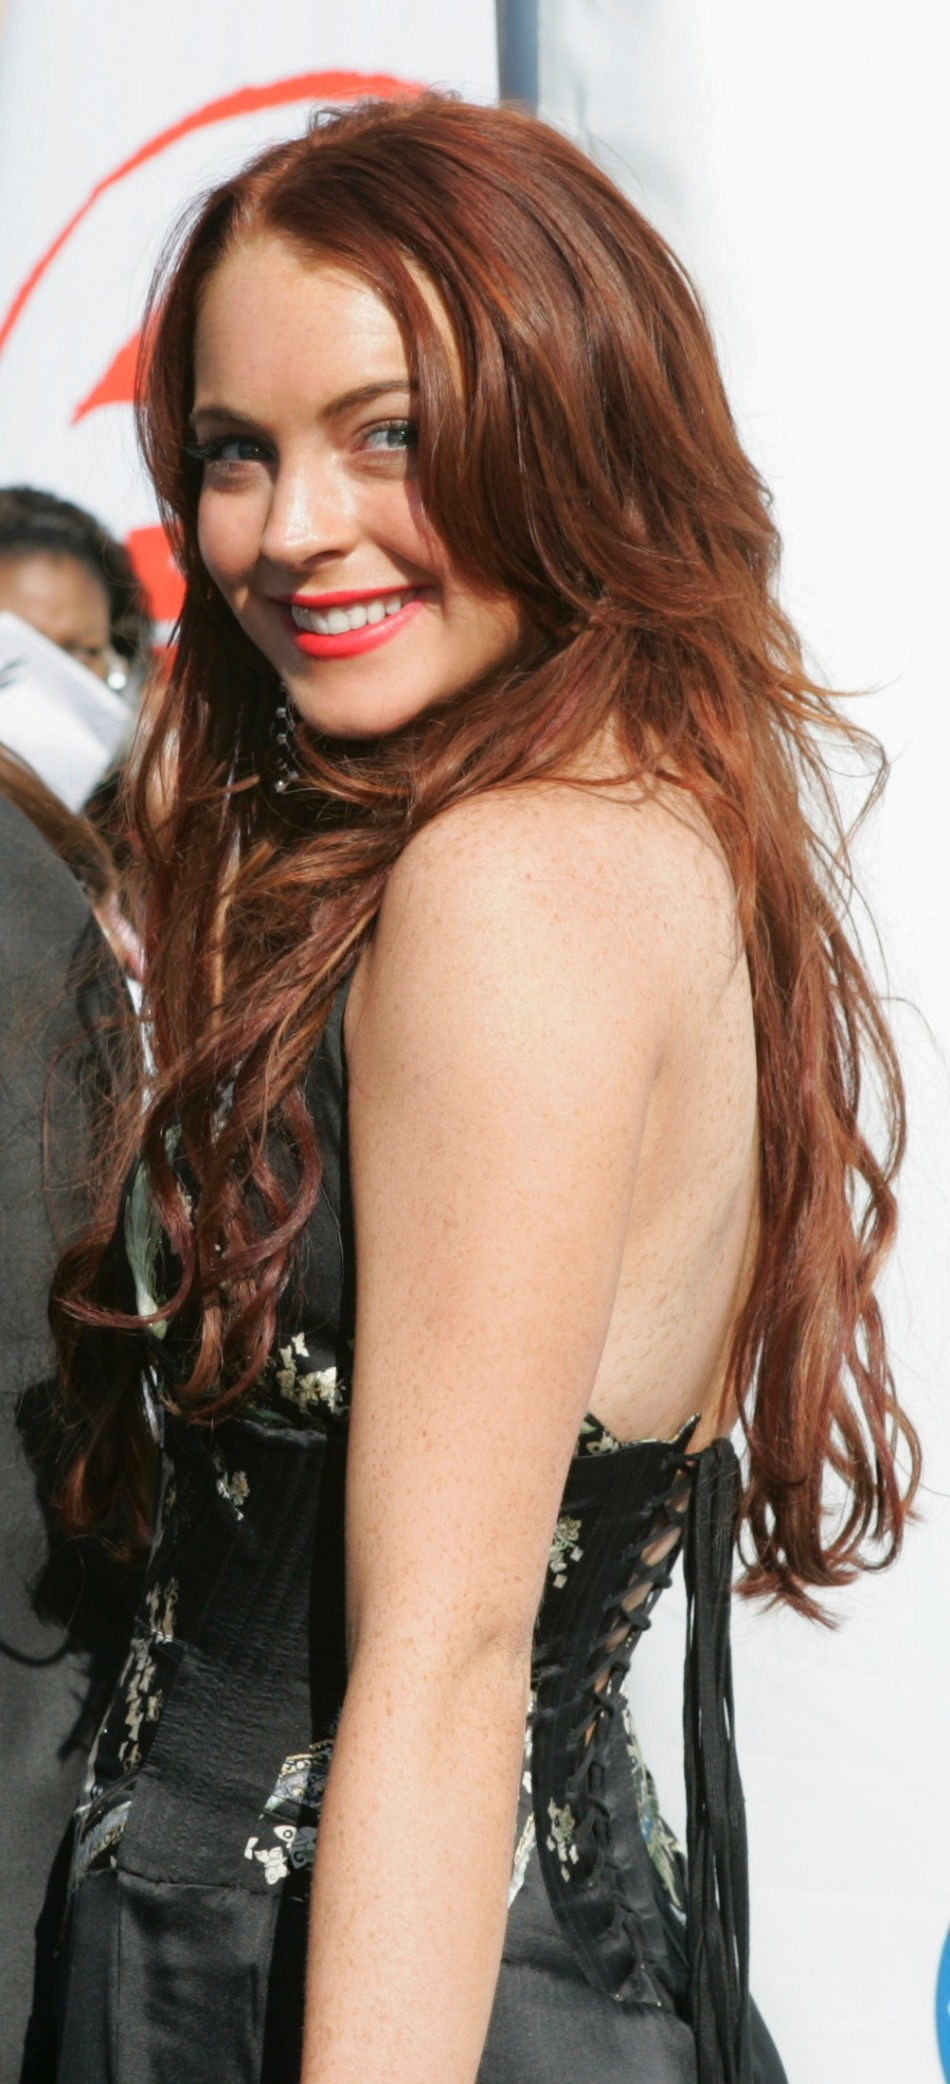 Lindsay Lohan in 2004 - The Beautiful Lady in Black